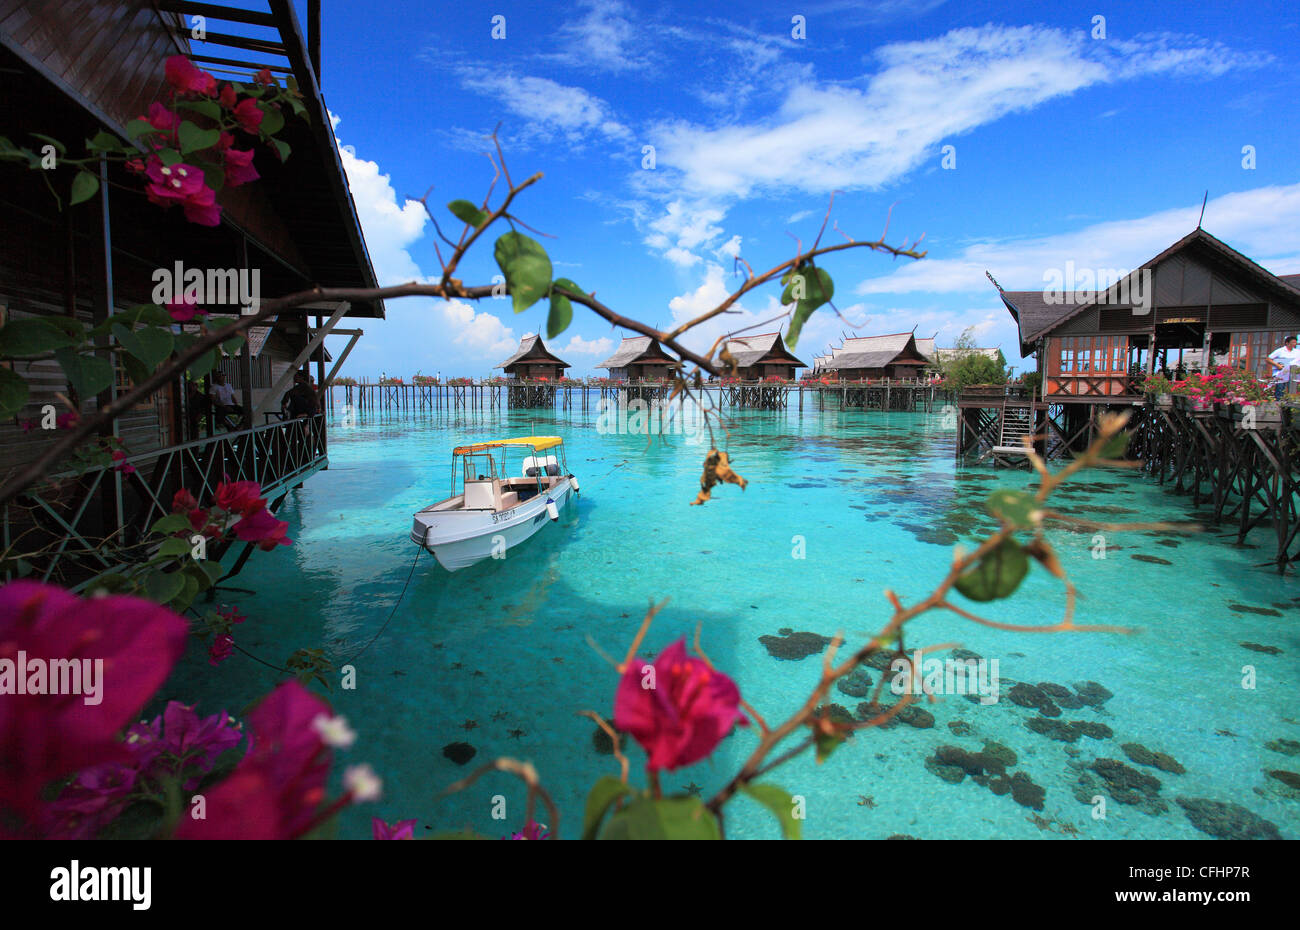 Breathtaking Photos A Breathtaking View Of Kapalai Resort Located In Semporna Island